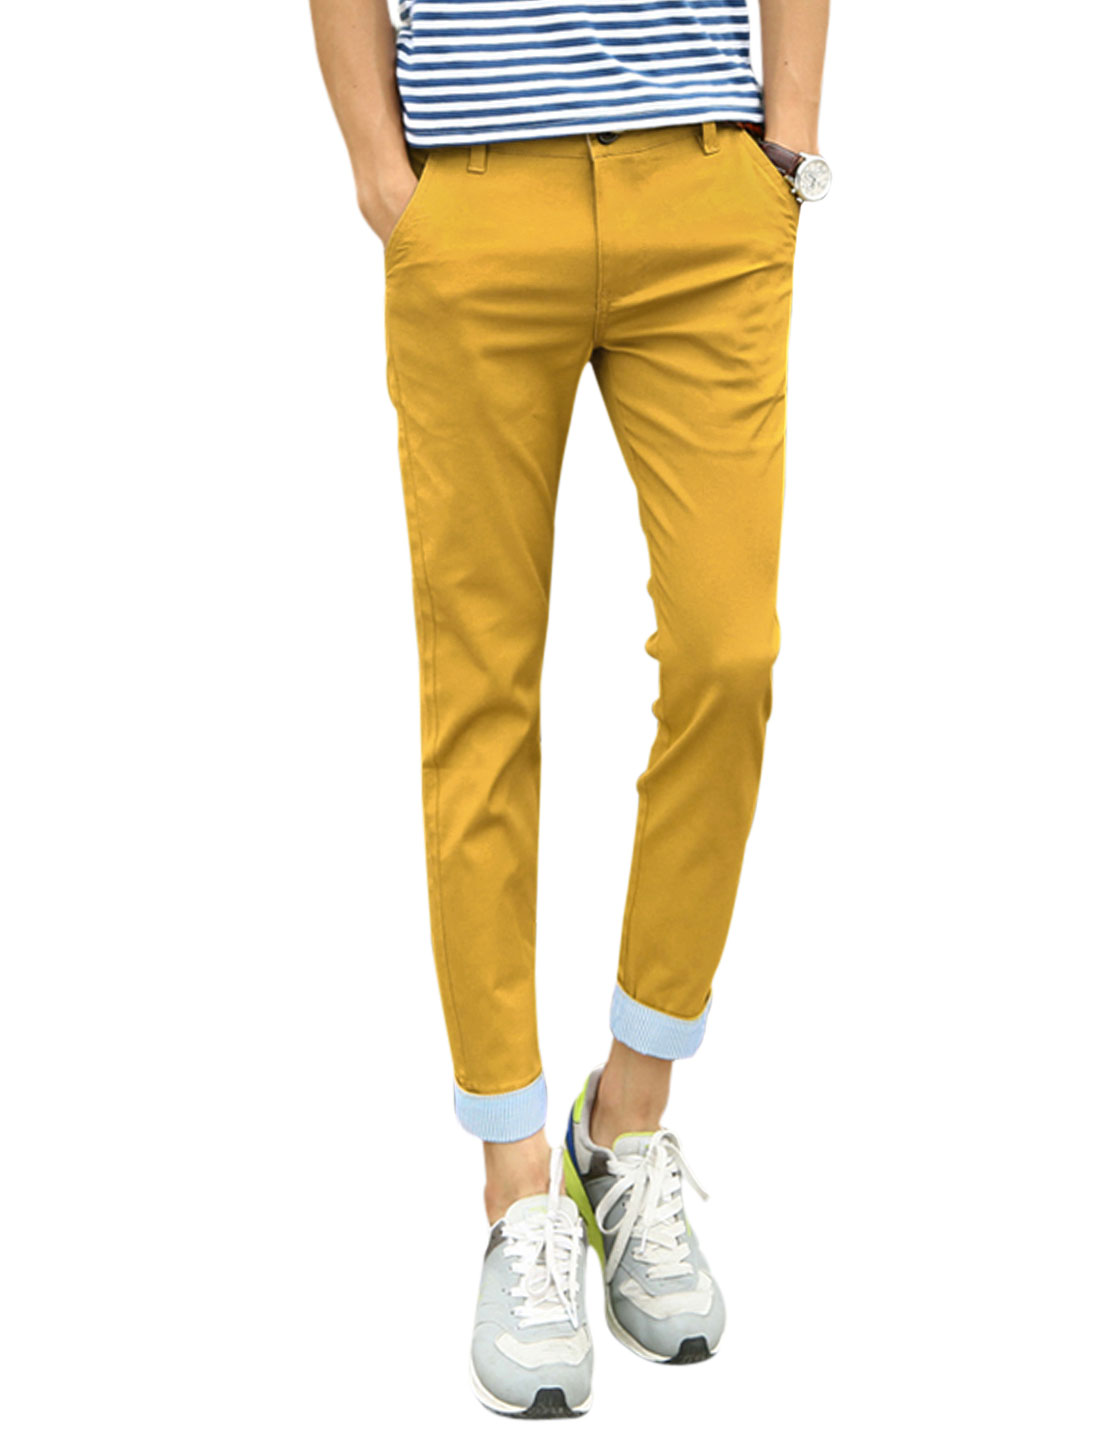 Men Zip Fly Two Welt Hip Pockets Rolled Cuffs Cropped Pants Curry W30